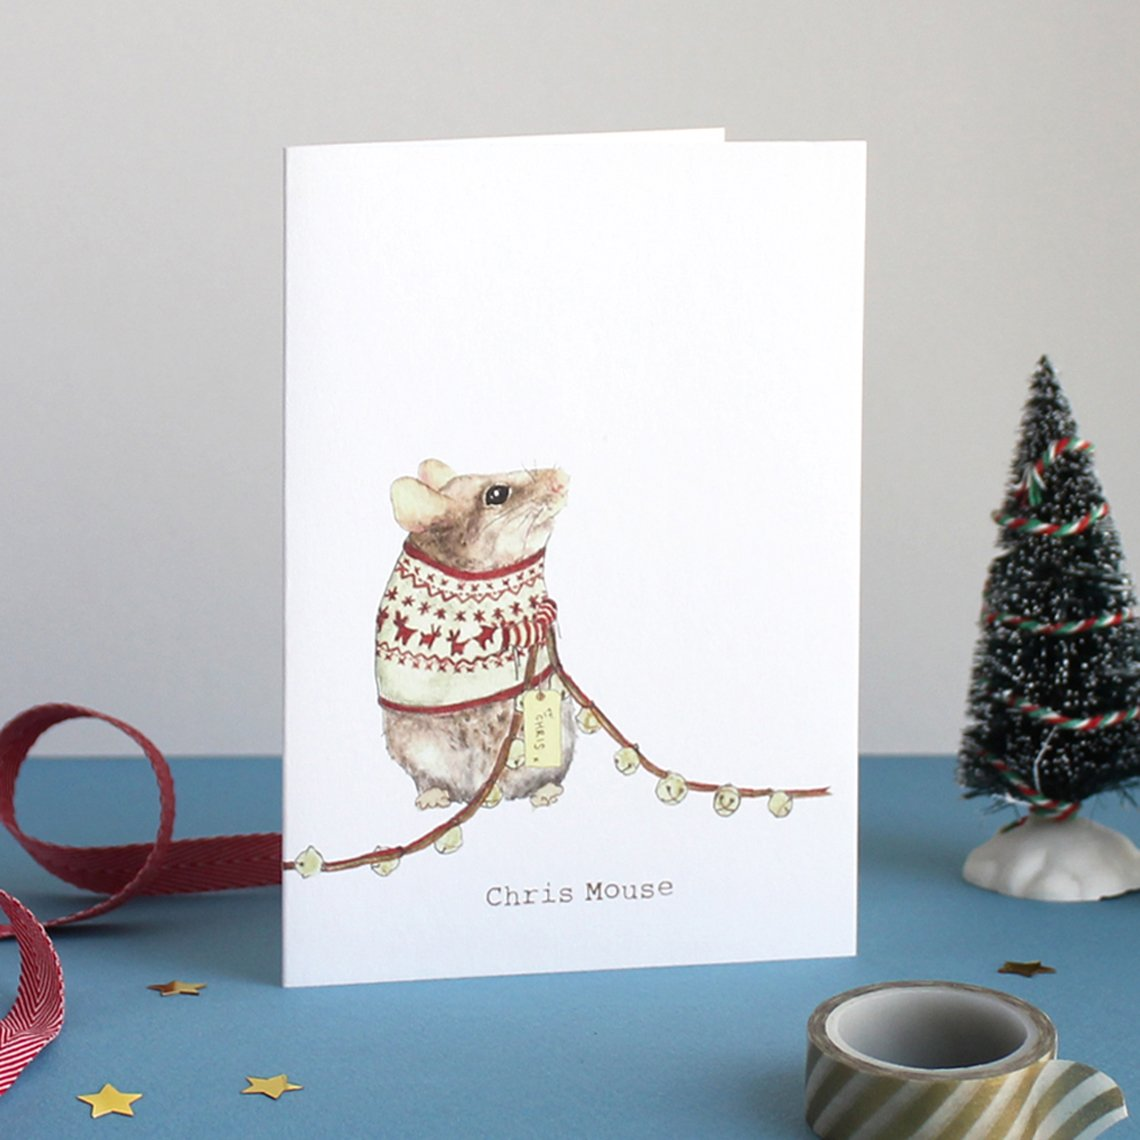 Mister Peebles Christmas Greeting Card 'Chris Mouse'